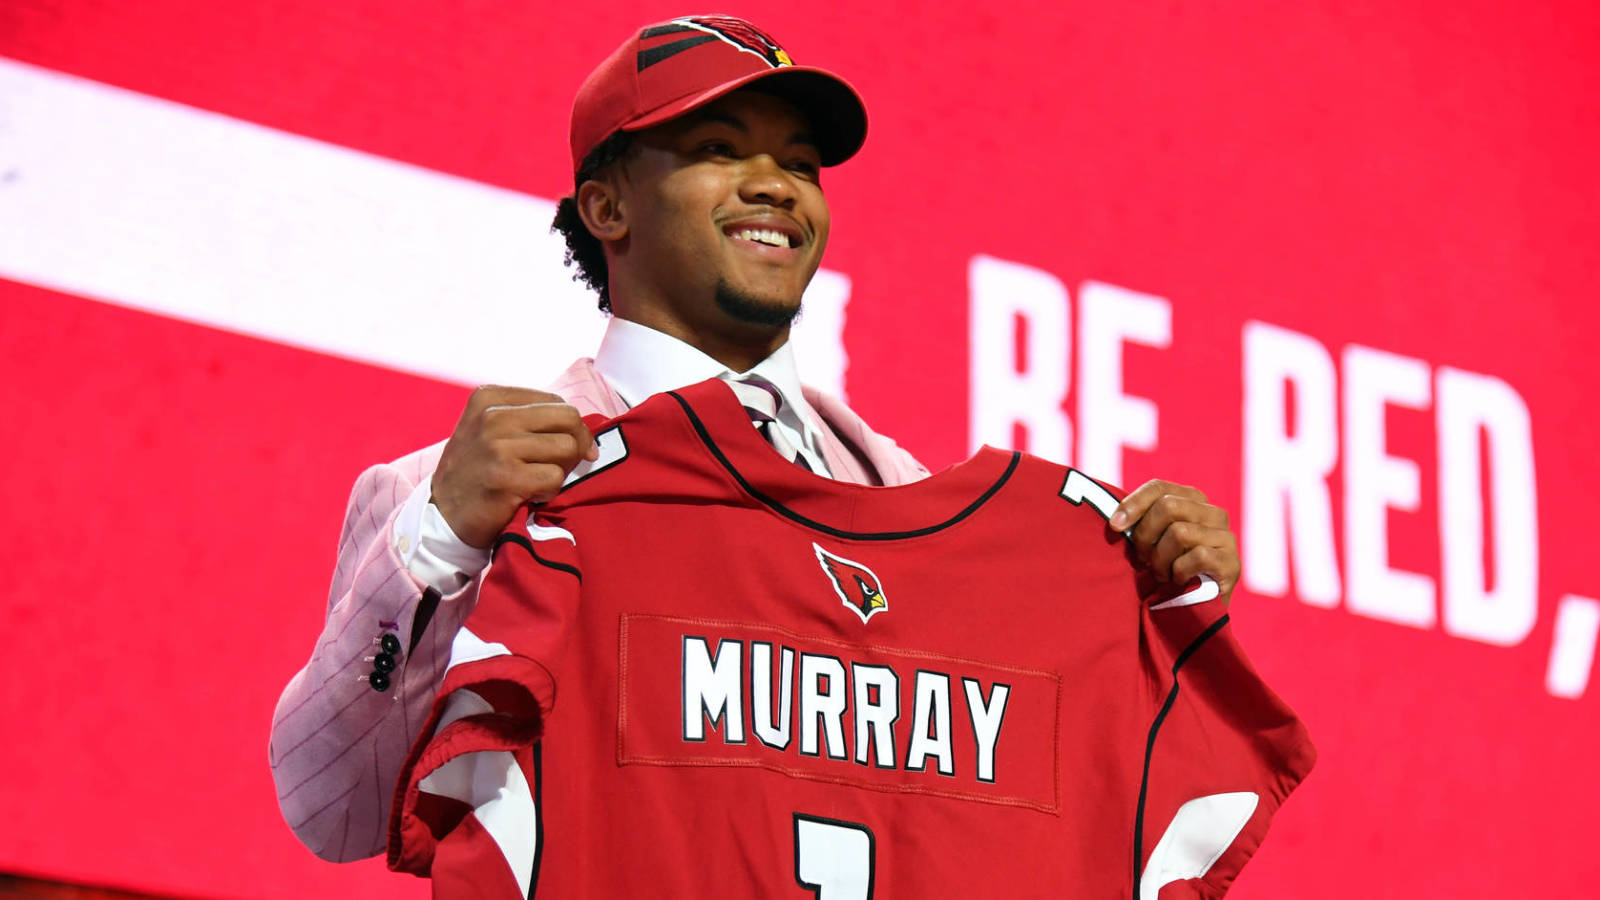 Top takeaways from first round of 2019 NFL Draft